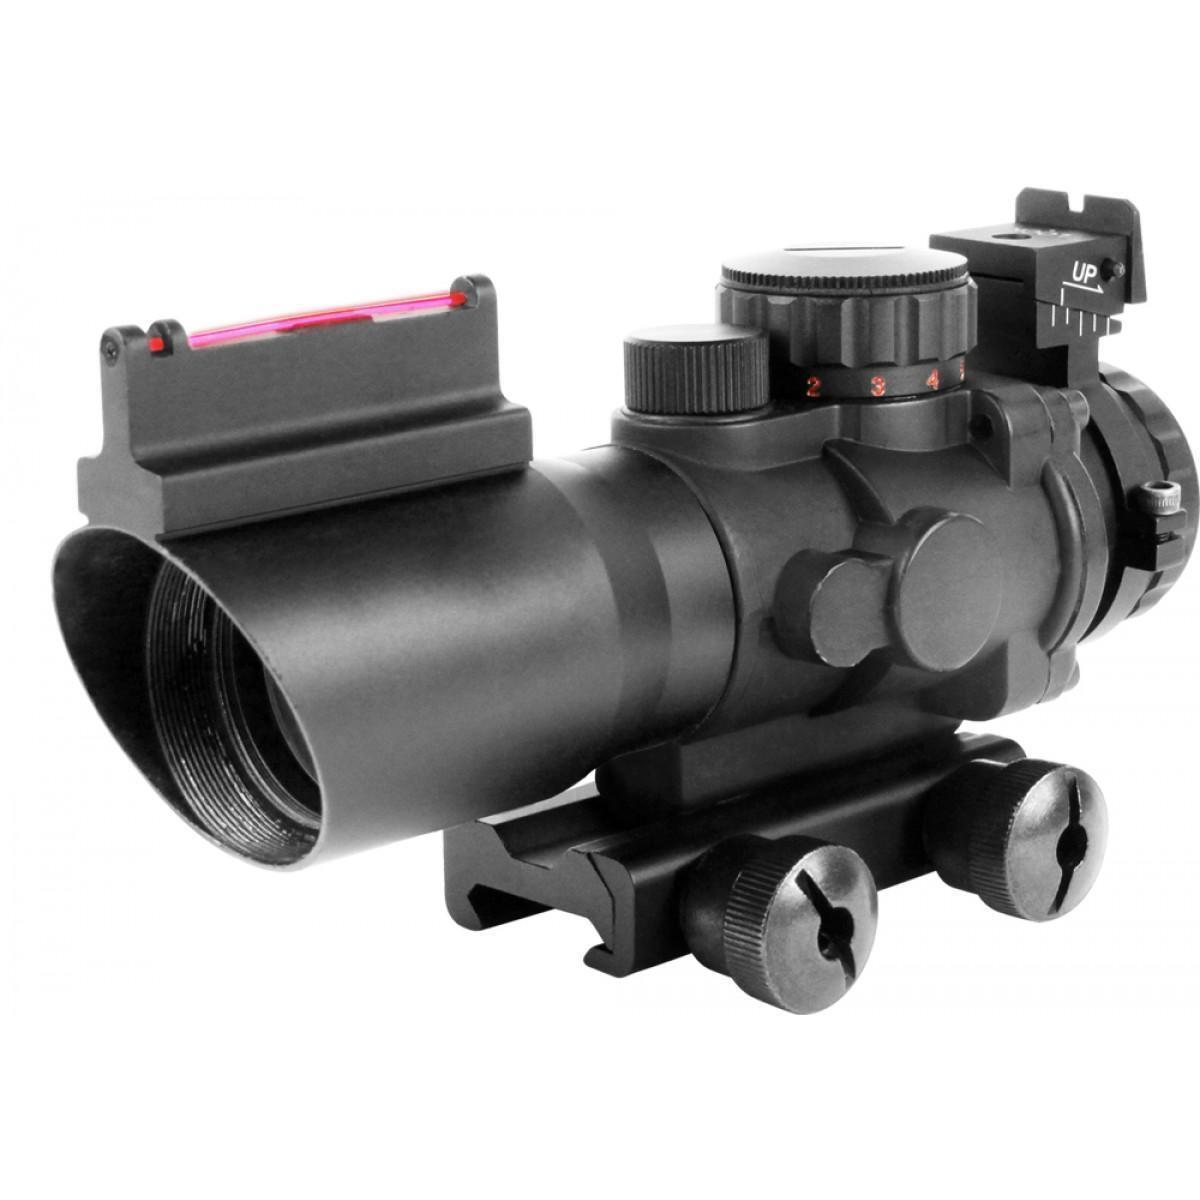 Aim Sports RECON 4X32mm Scope with Fiber Optic BUIS & Rapid